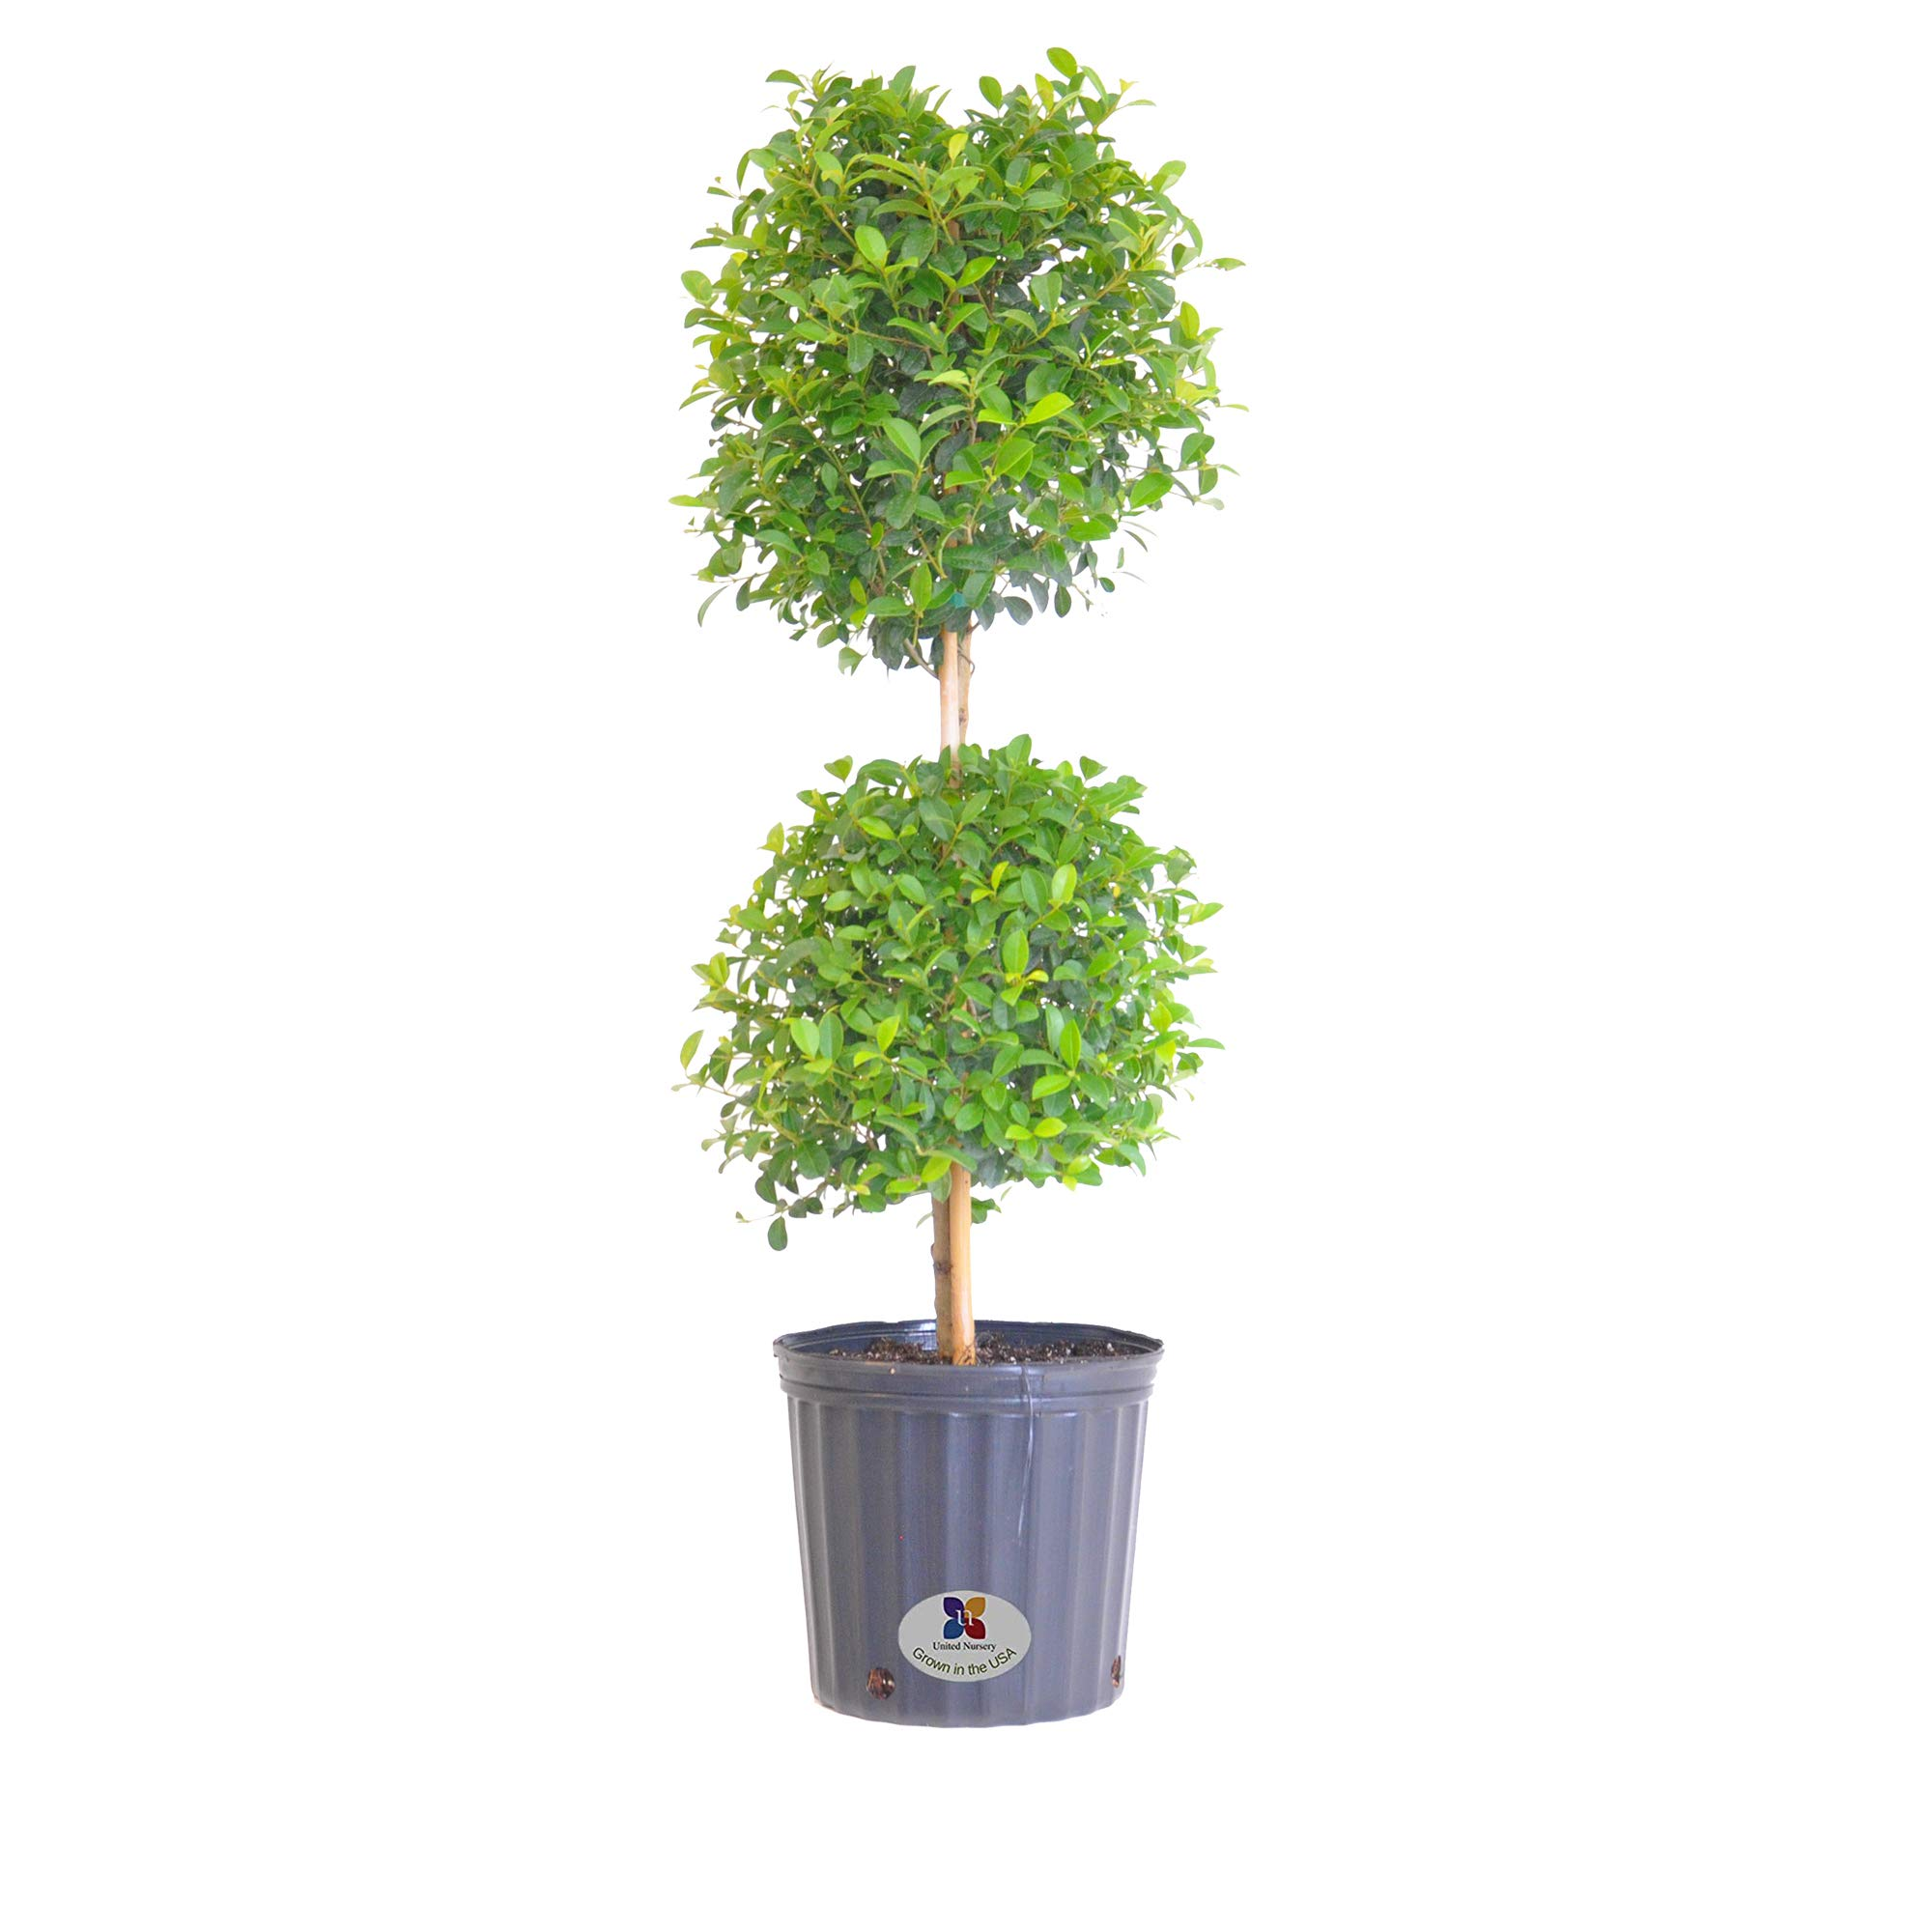 United Nursery Eugenia Topiary Live Outdoor Euginia Myrtifolia Plant Shipped in 9.25 inch Grower Pot 39-41 inches by United Nursery